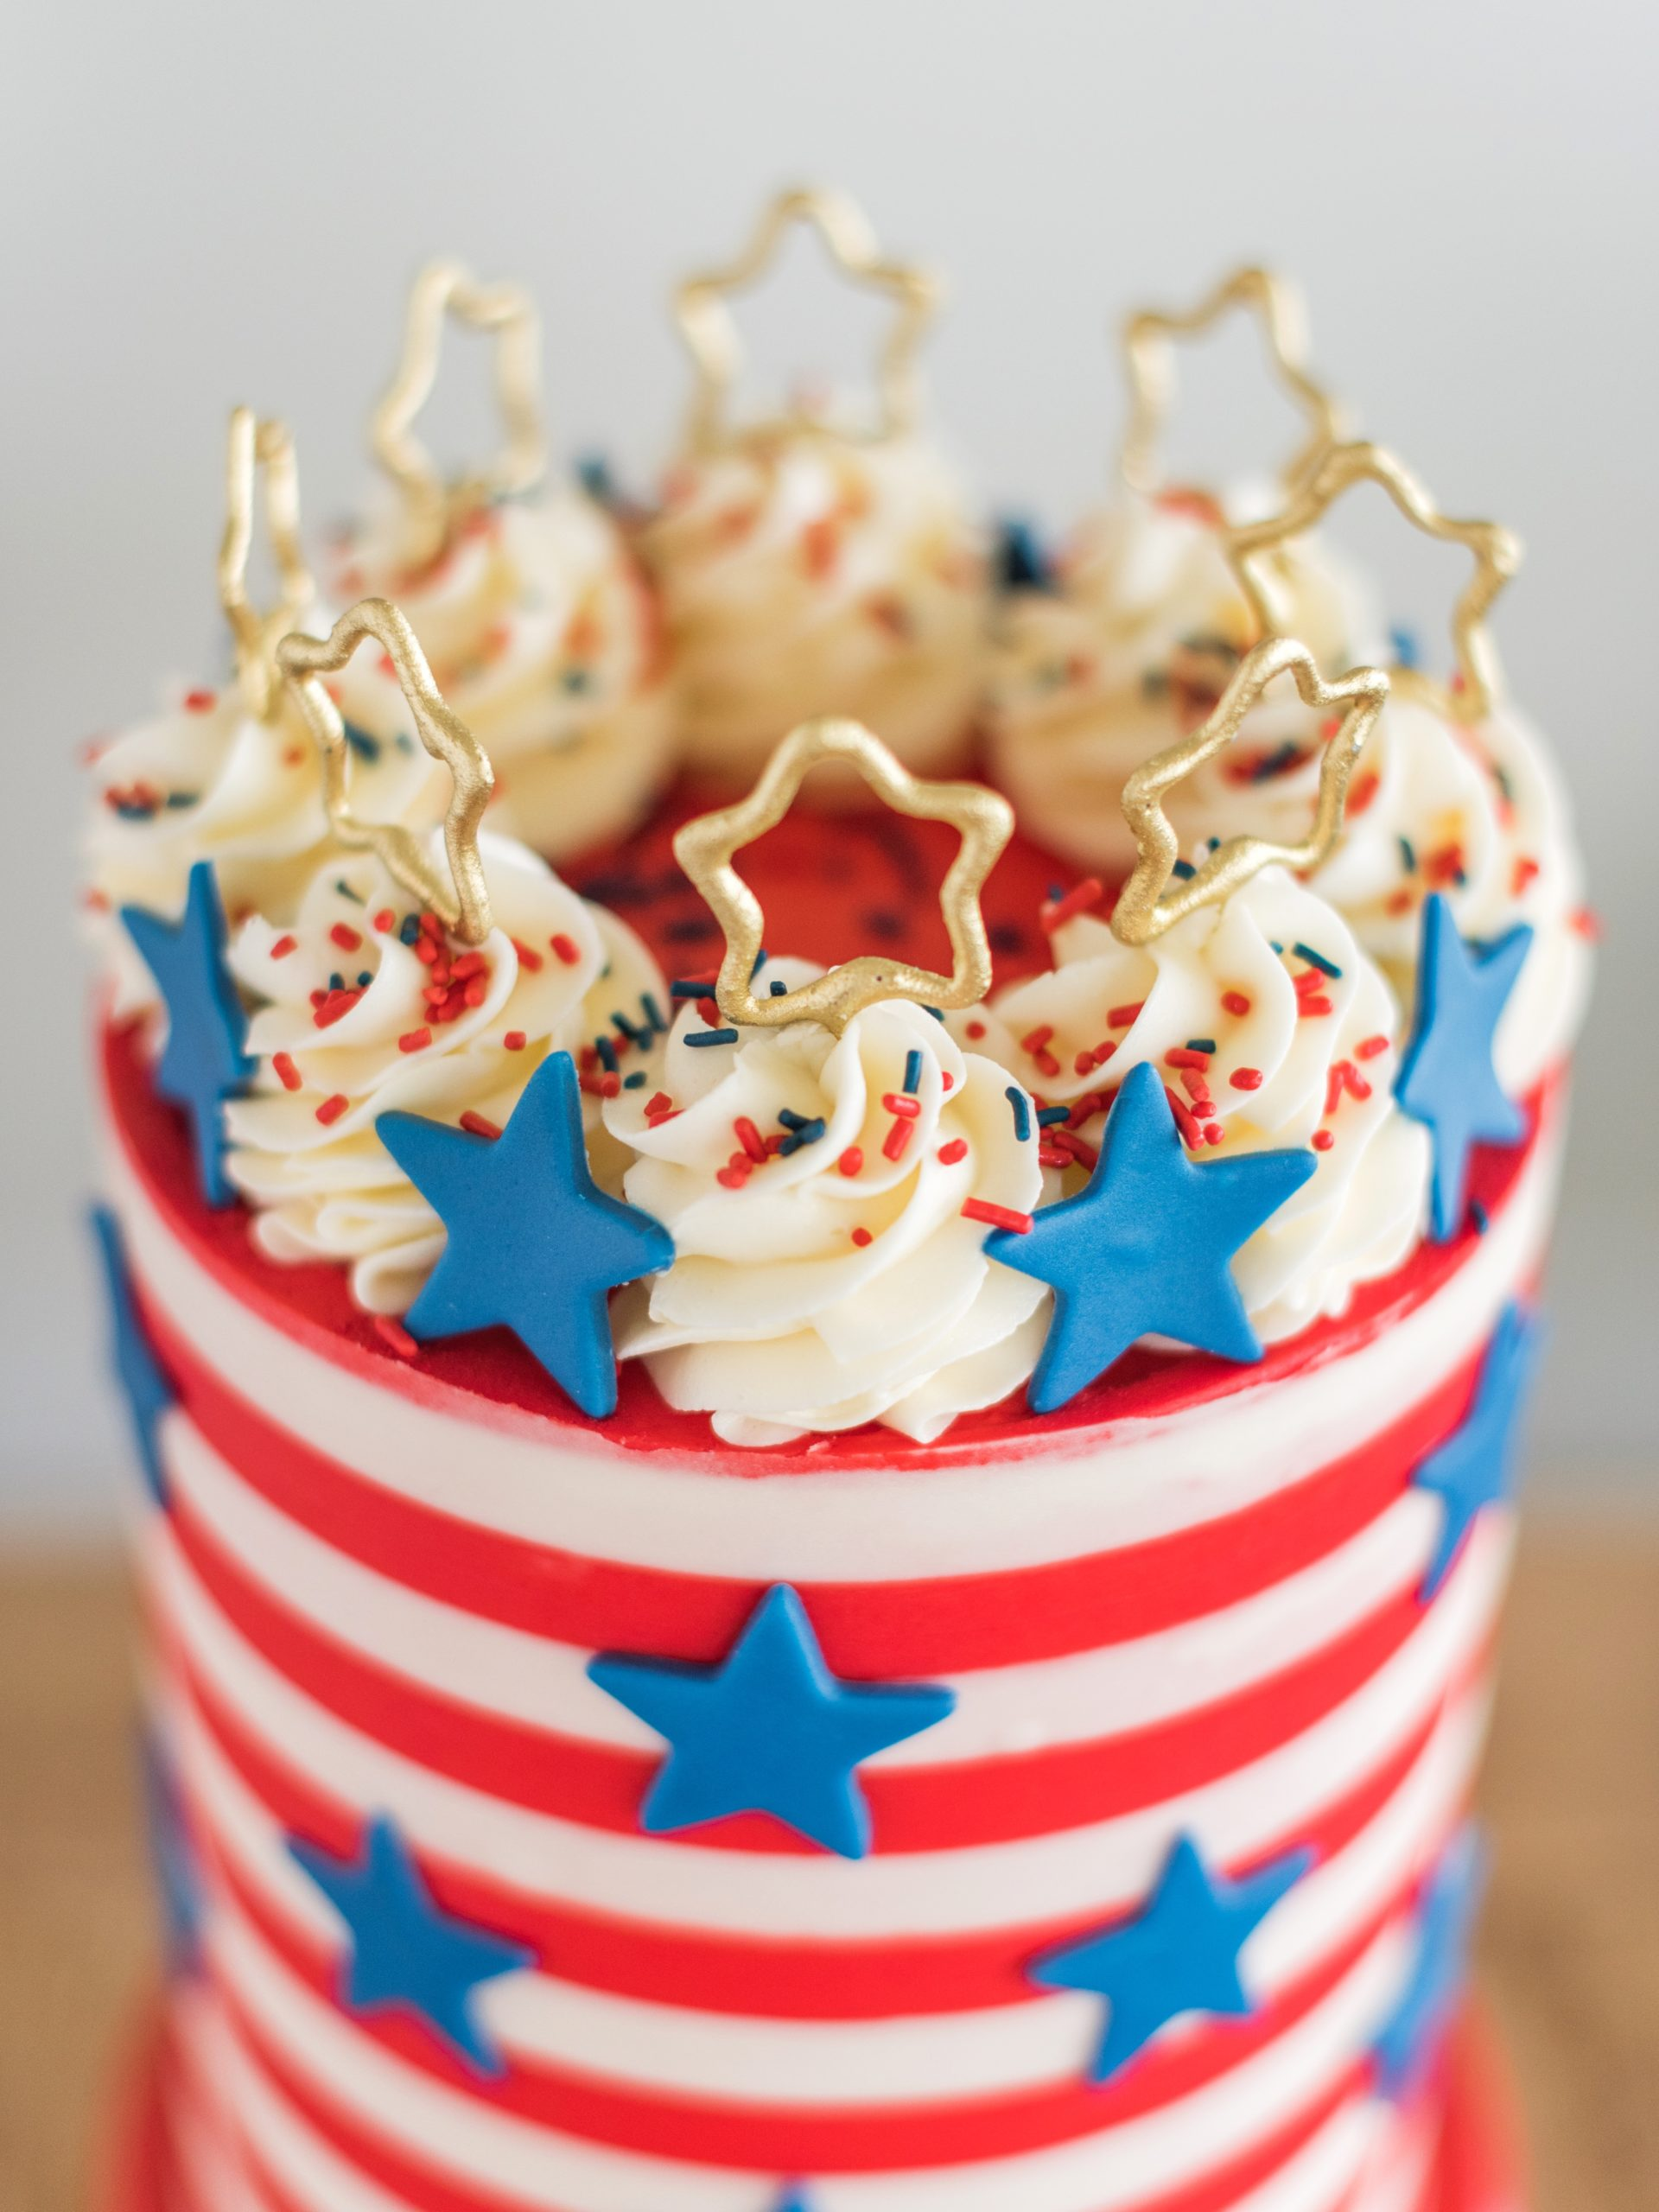 Sparkling Stars and Stripes 4th of July Cake -  how to create buttercream stripes and this 4th of July Stars and Stripes cake. #cakebycourtney #4thofjuly #fourthofjuly #fourthofjulycake #fourthofjulydesserts #4thofjulycake #4thofjulydesserts #4thofjulycakeideas #redwhiteandbluecake #starsandstripescake #howtomakebuttercreamstripes #howtocakeit